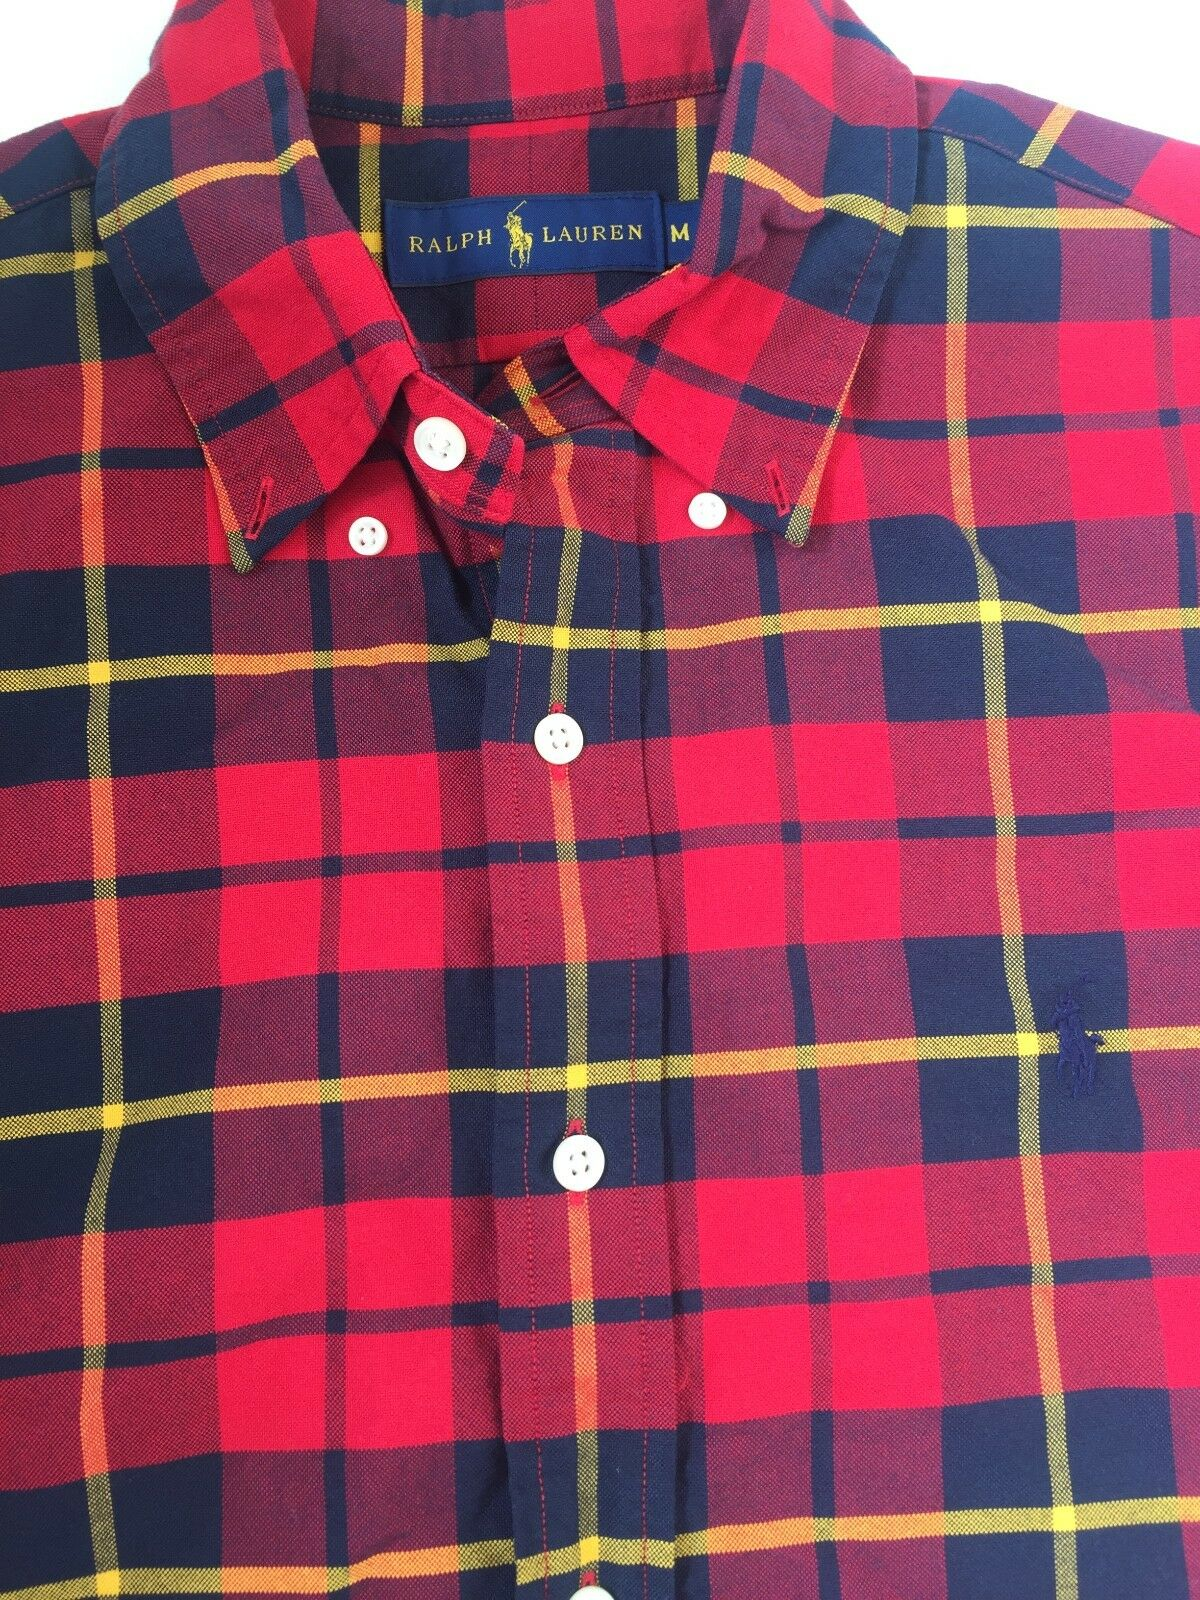 Men's Polo Ralph Lauren Tartan Plaid Oxford (Medium)